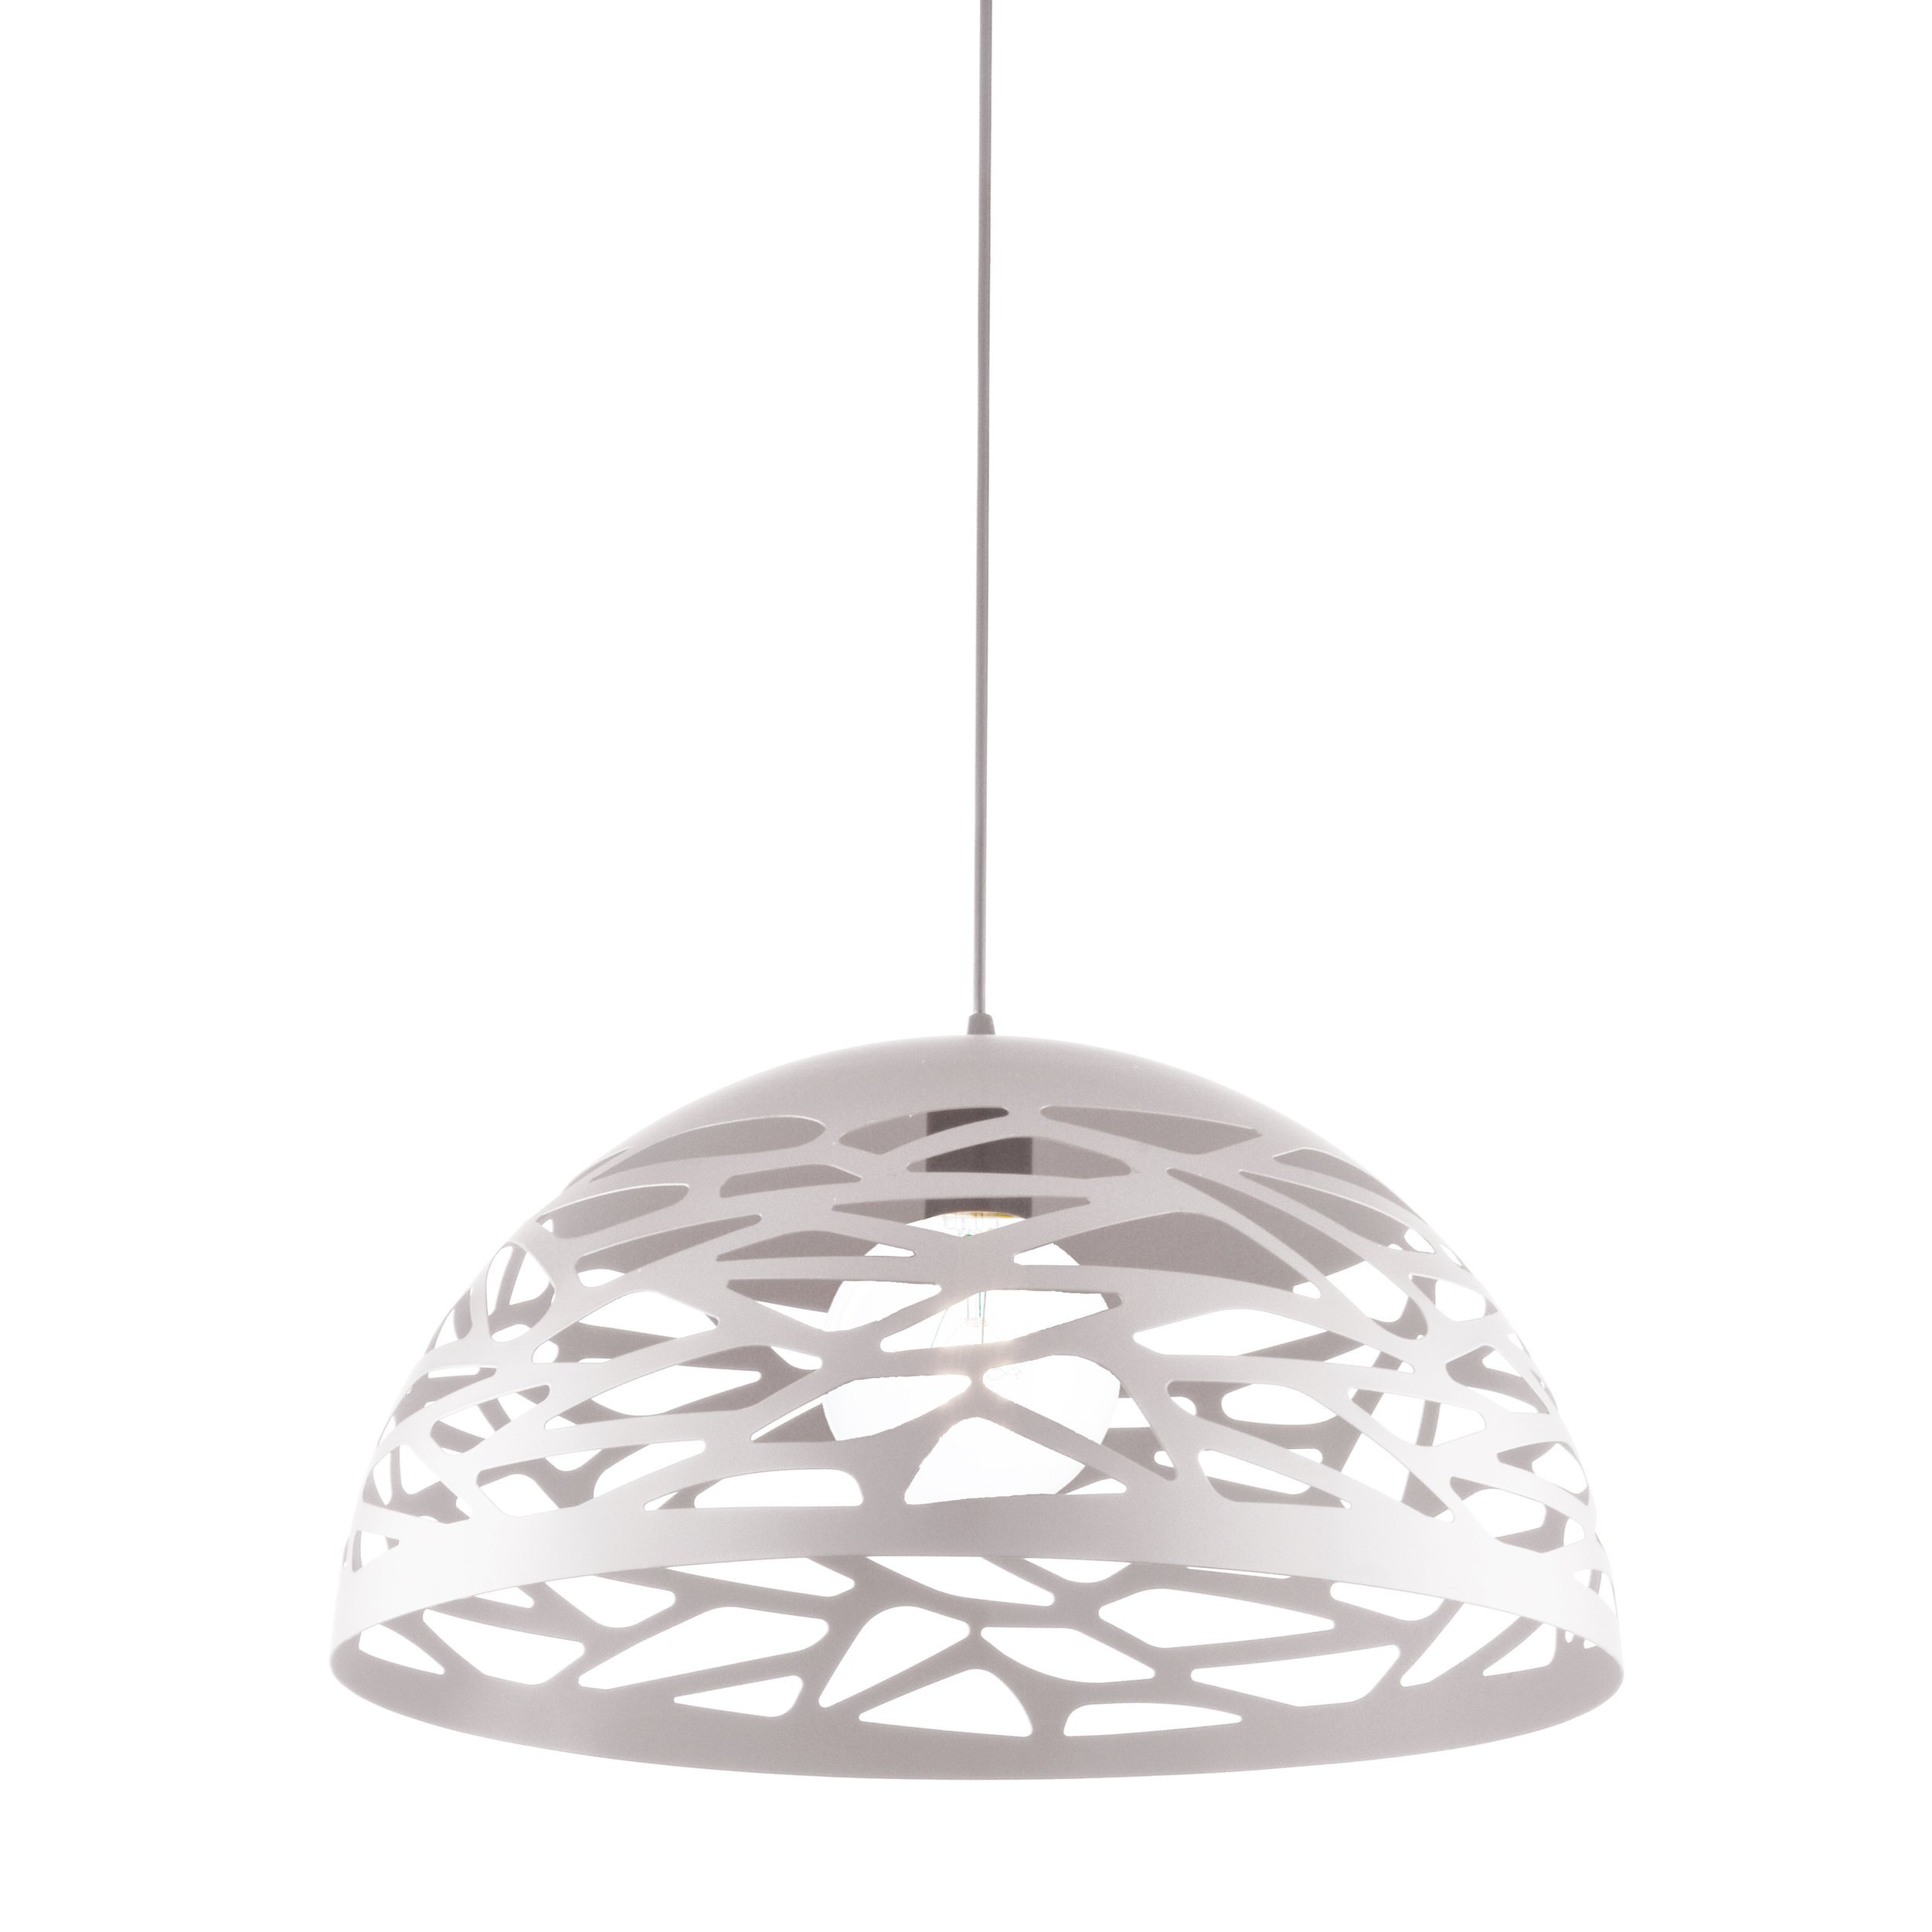 Shaded Pendant Light - Colour: White MatteDimensions: 16